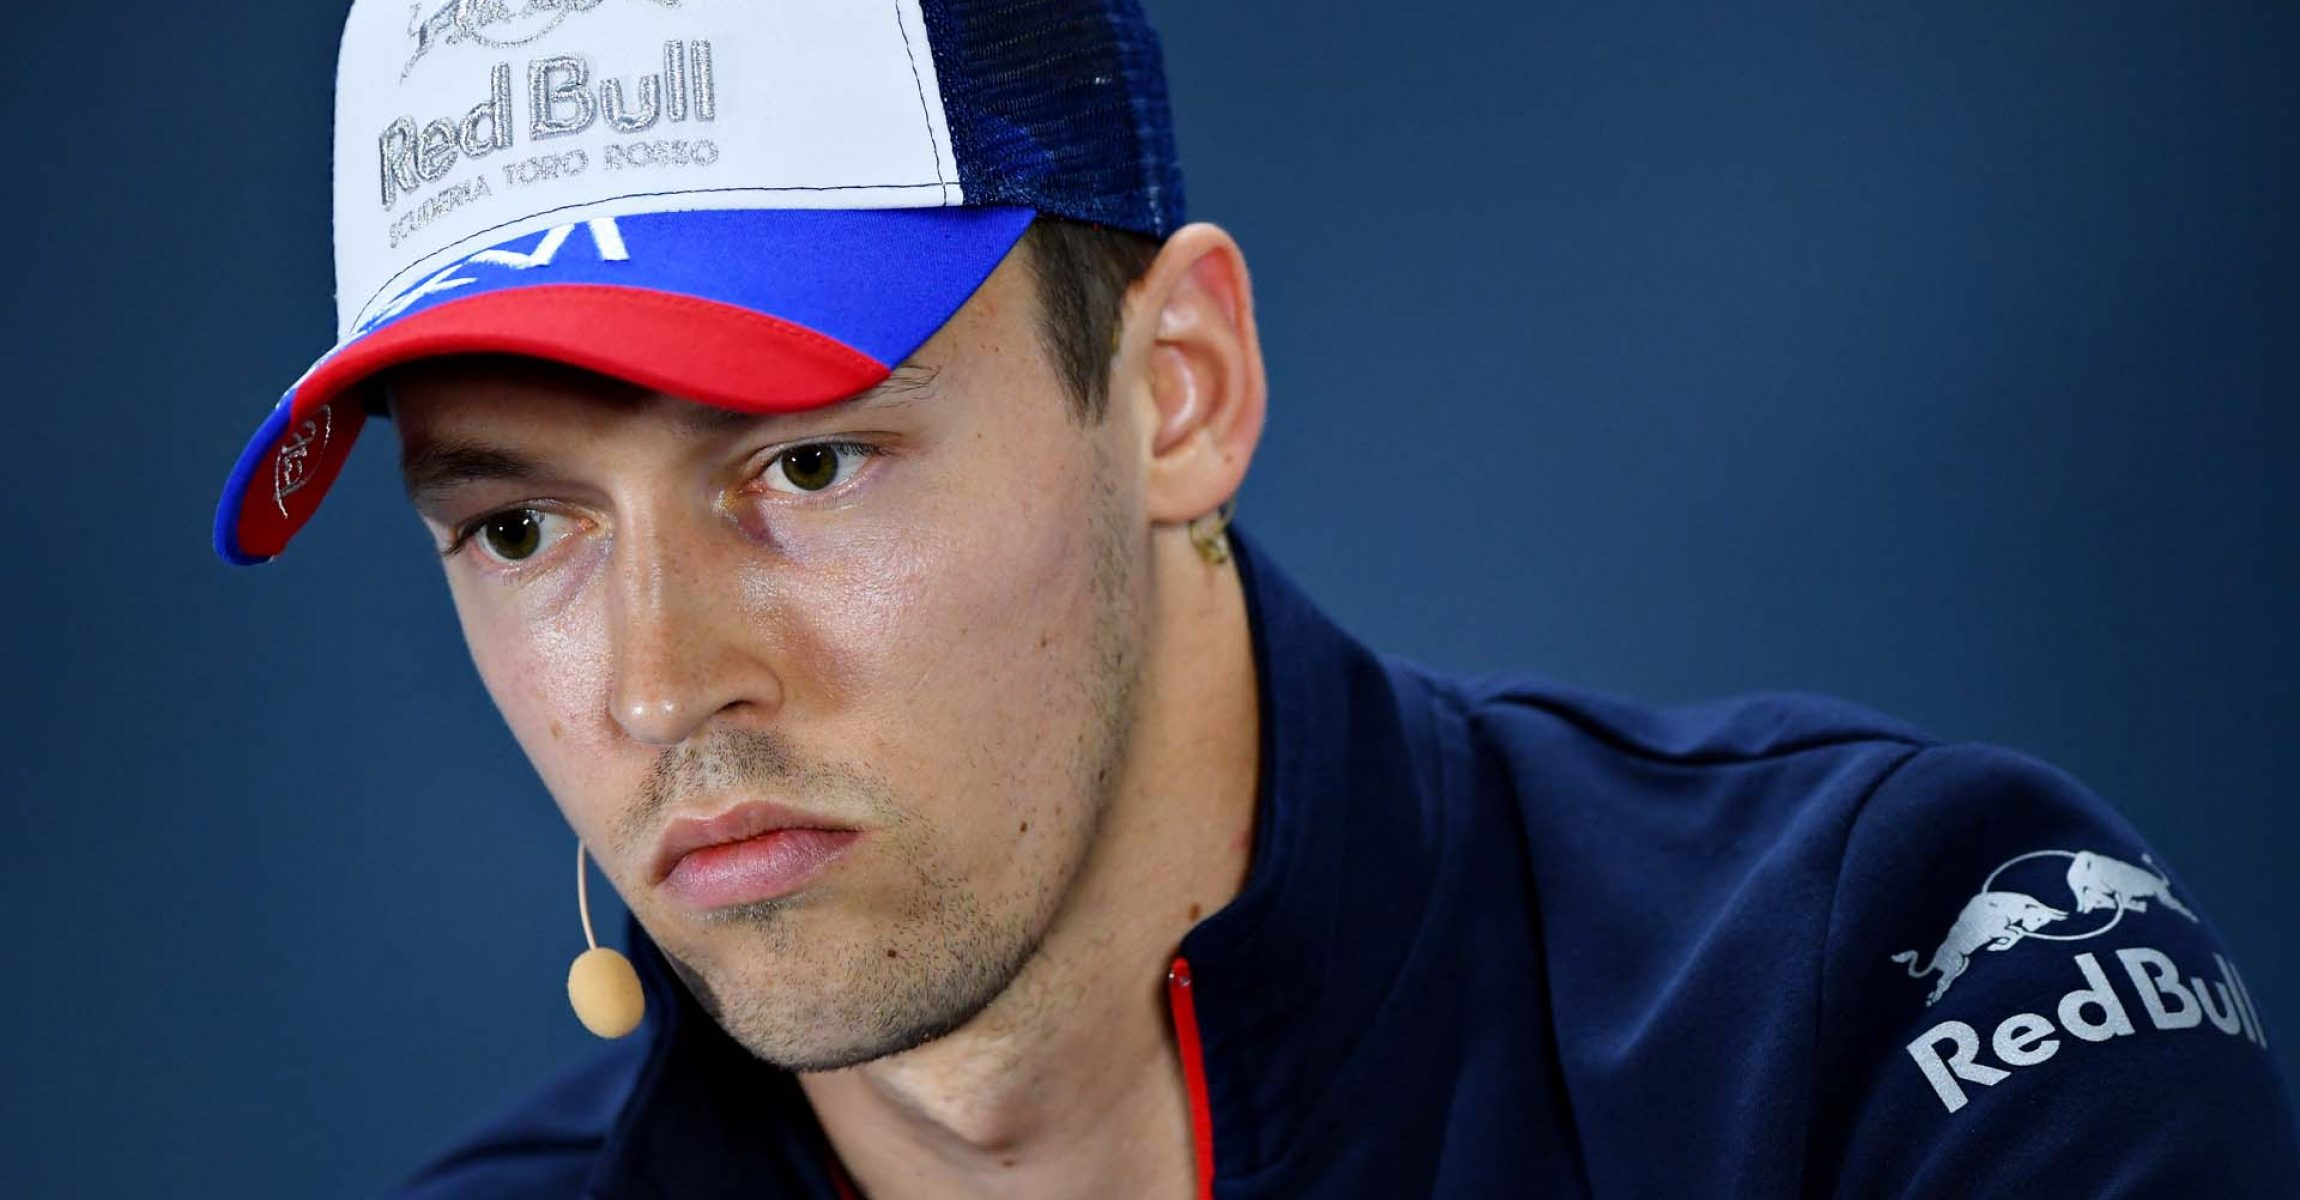 SOCHI, RUSSIA - SEPTEMBER 26: Daniil Kvyat of Russia and Scuderia Toro Rosso talks in the Drivers Press Conference during previews ahead of the F1 Grand Prix of Russia at Sochi Autodrom on September 26, 2019 in Sochi, Russia. (Photo by Clive Mason/Getty Images) // Getty Images / Red Bull Content Pool  // AP-21PK6EQK11W11 // Usage for editorial use only //